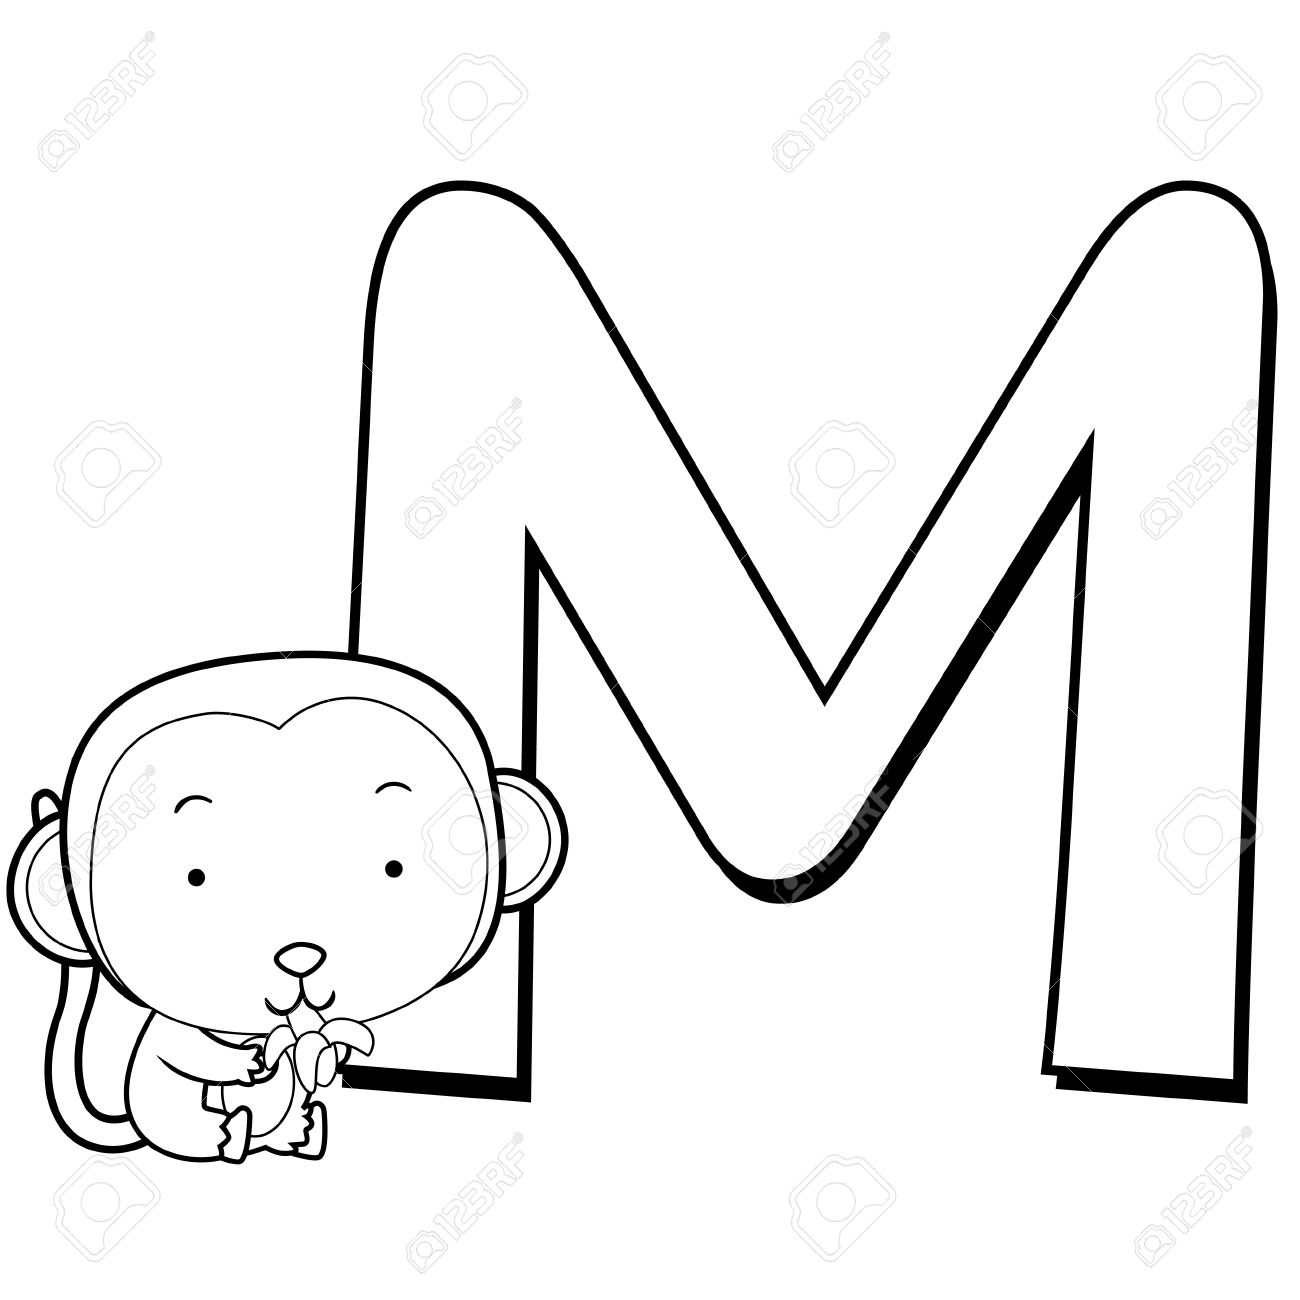 1300x1300 Alphabet Drawing For Kids